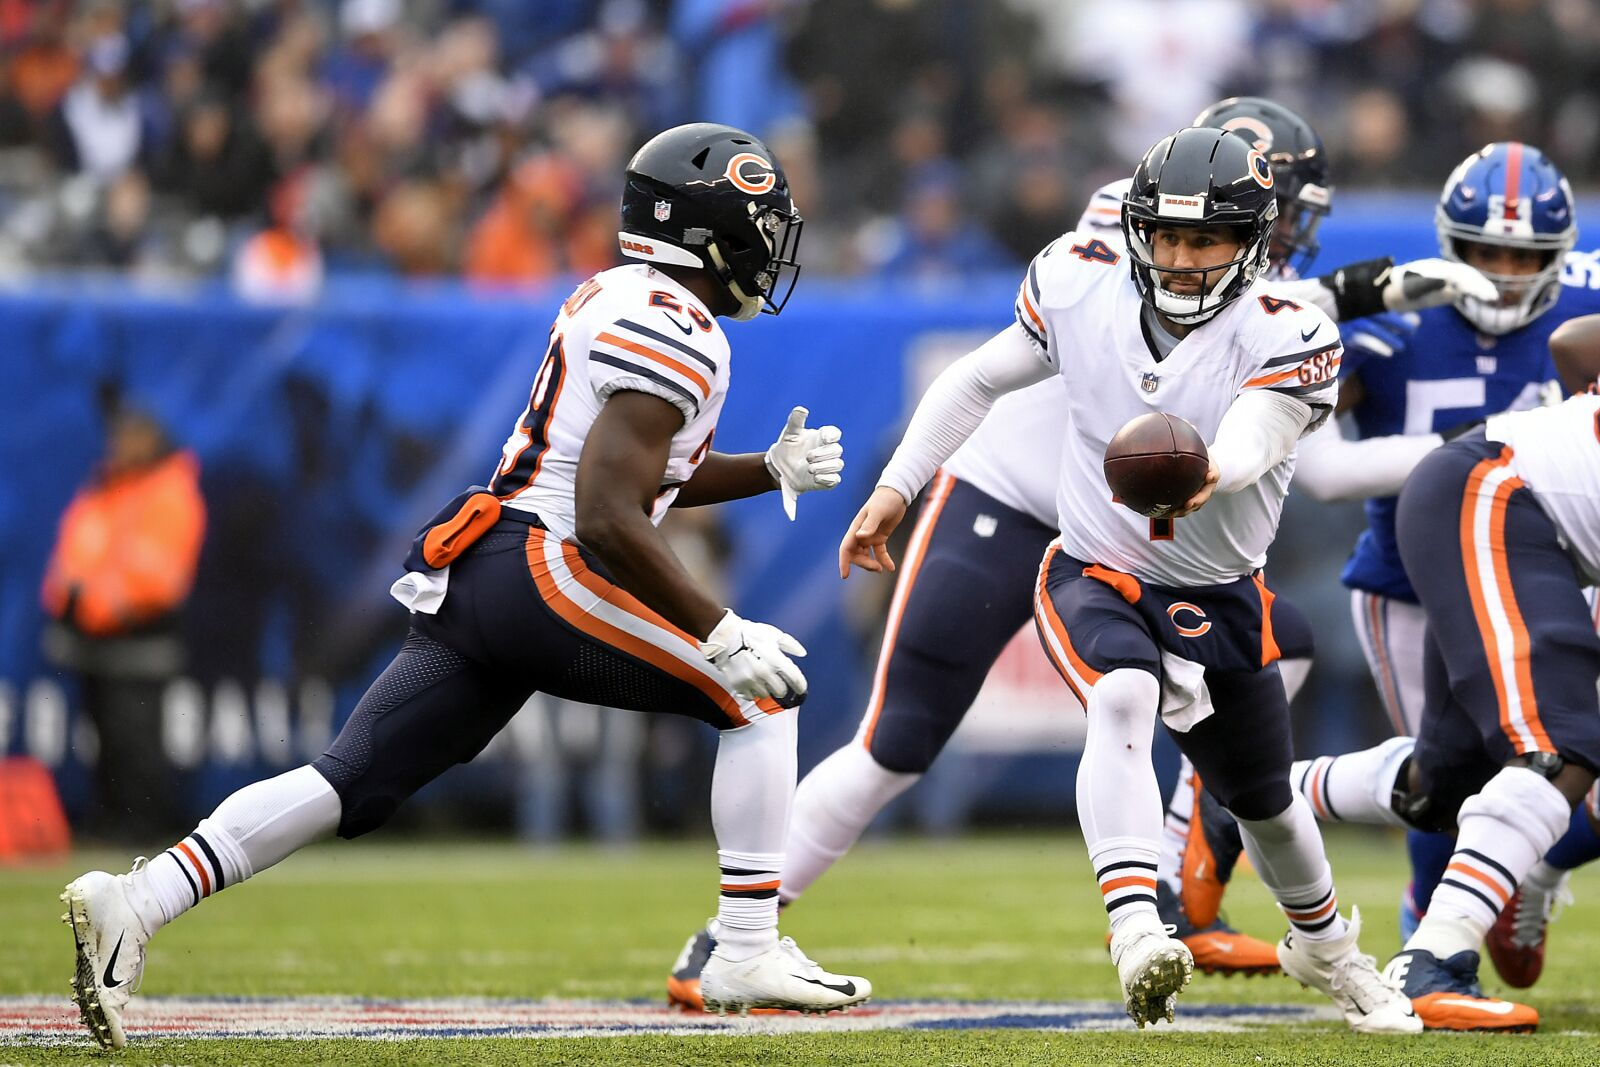 a40e3fa5 Chicago Bears preseason week 2 preview @ New York Giants